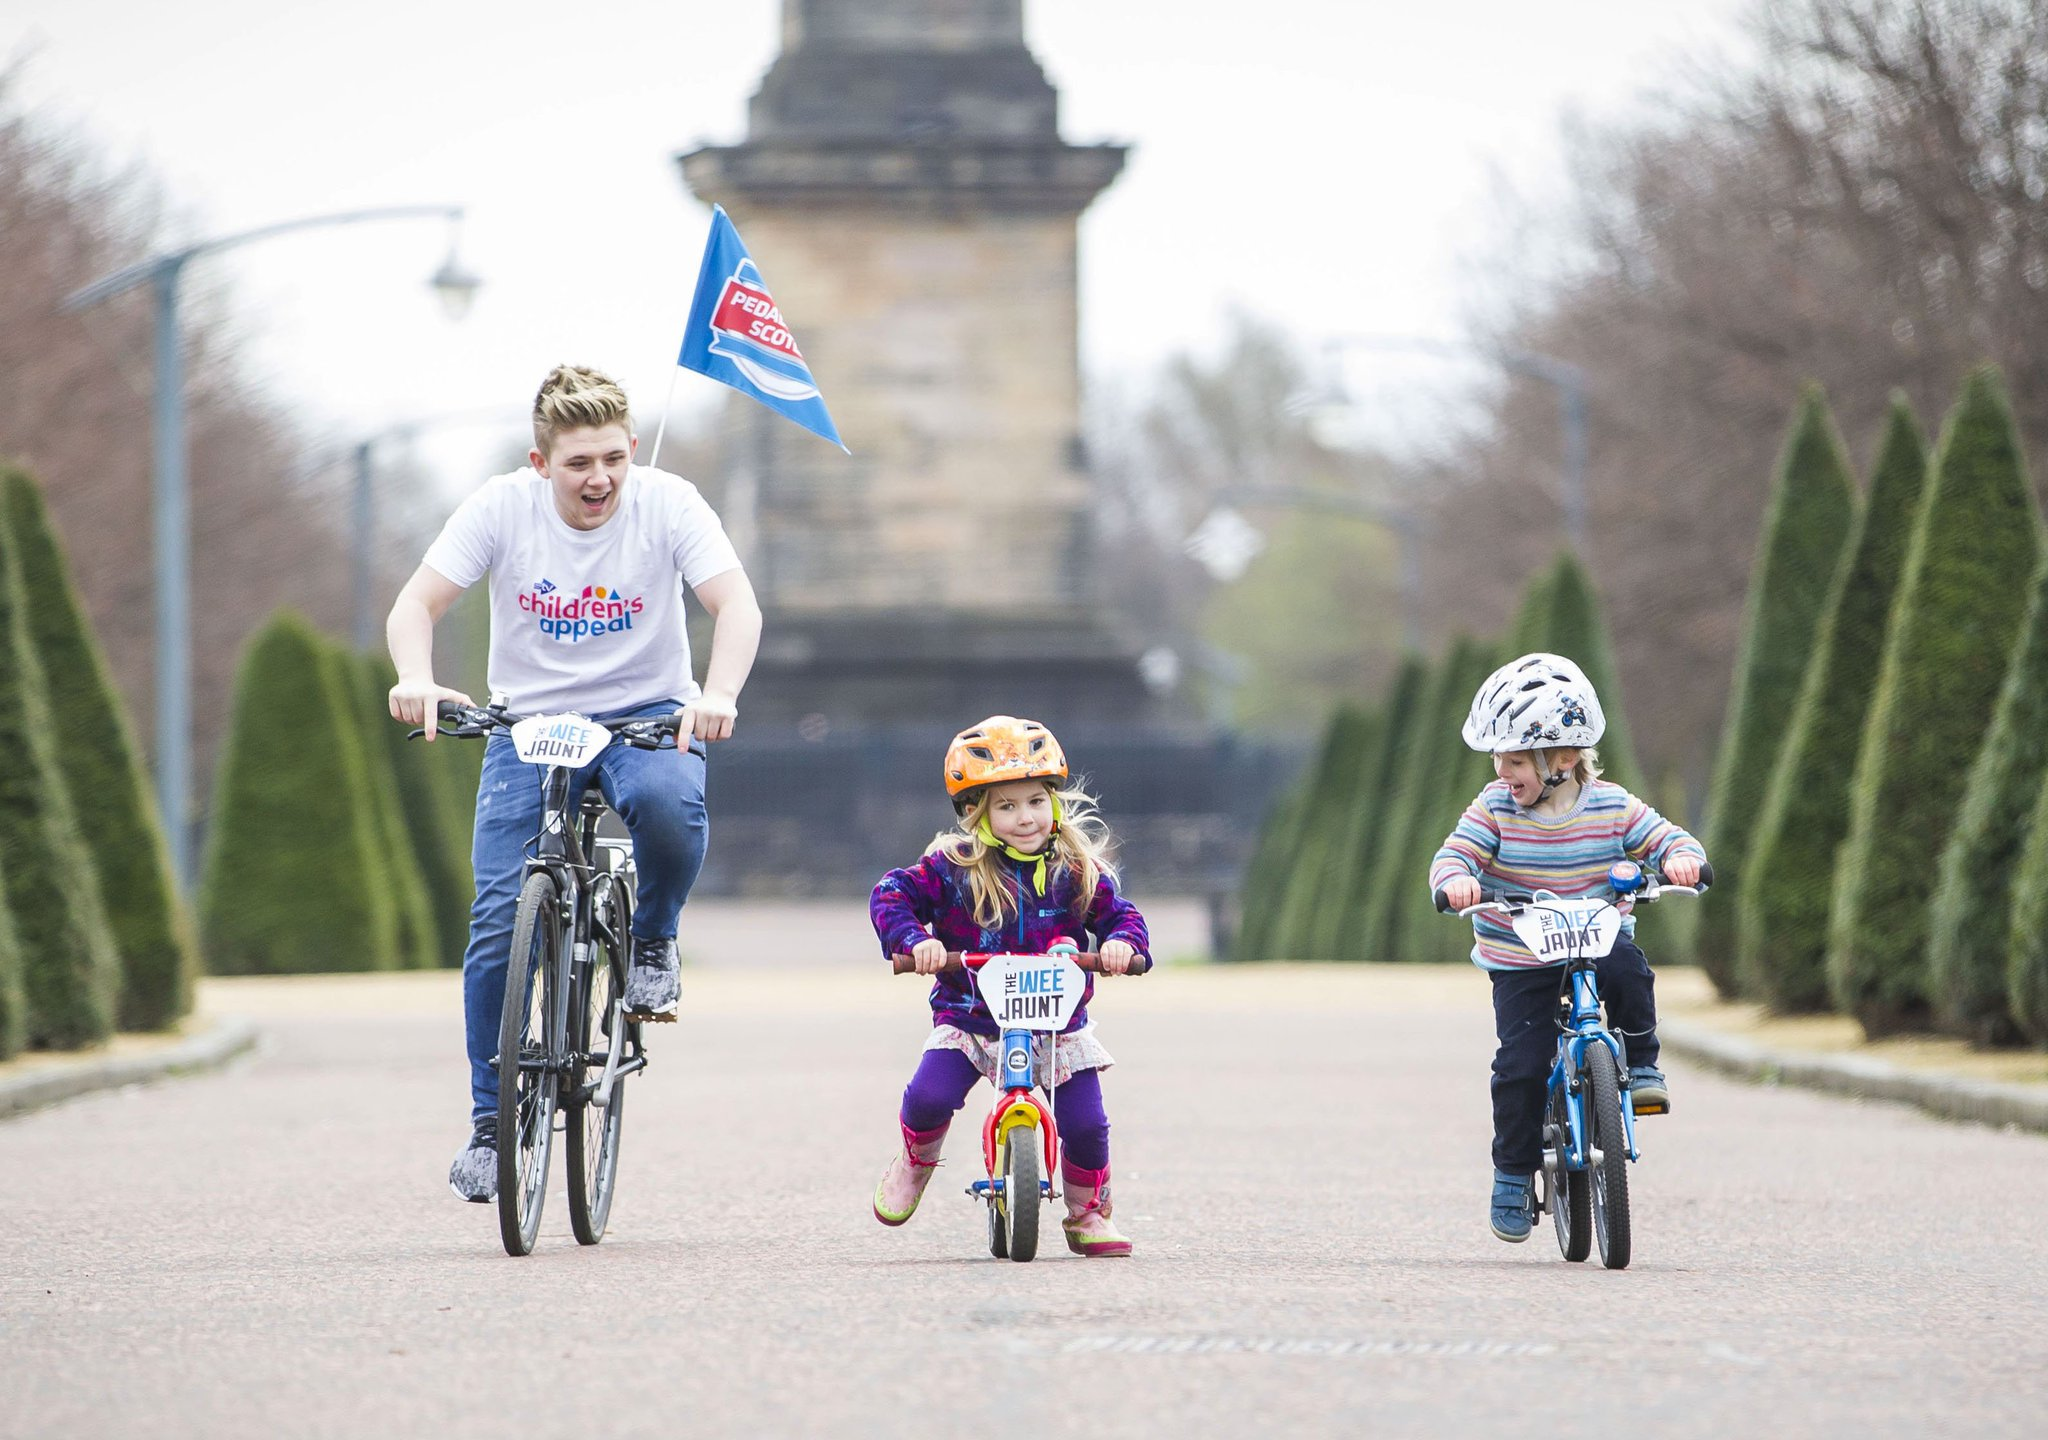 RT @Glasgow_Live: Great to see @nickymcdonald1 supporting @pedallscotland Wee Jaunt https://t.co/eXEQSUMdDe https://t.co/O3BeUkCs20